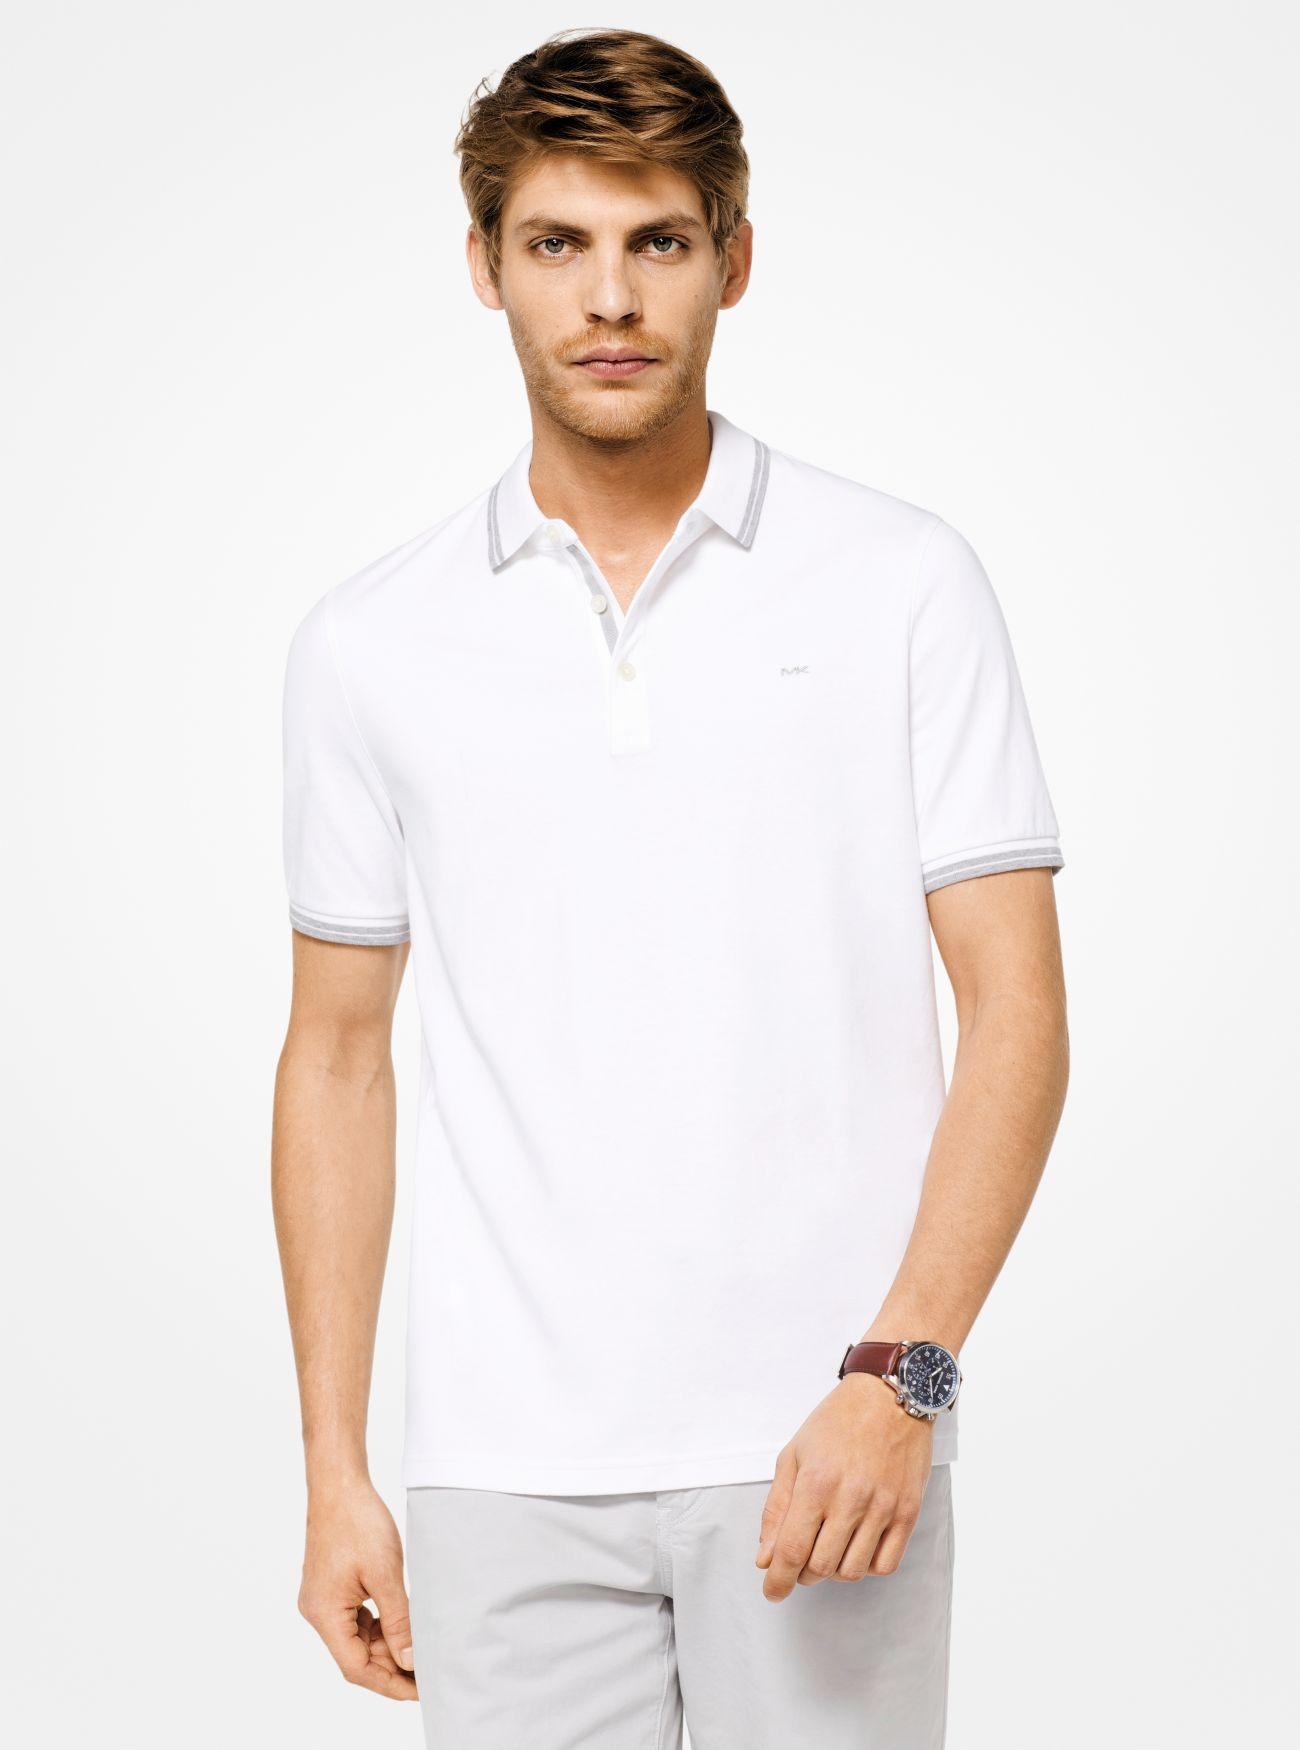 c8c1b5a7 Michael Kors Greenwich Cotton Polo Shirt in White for Men - Lyst